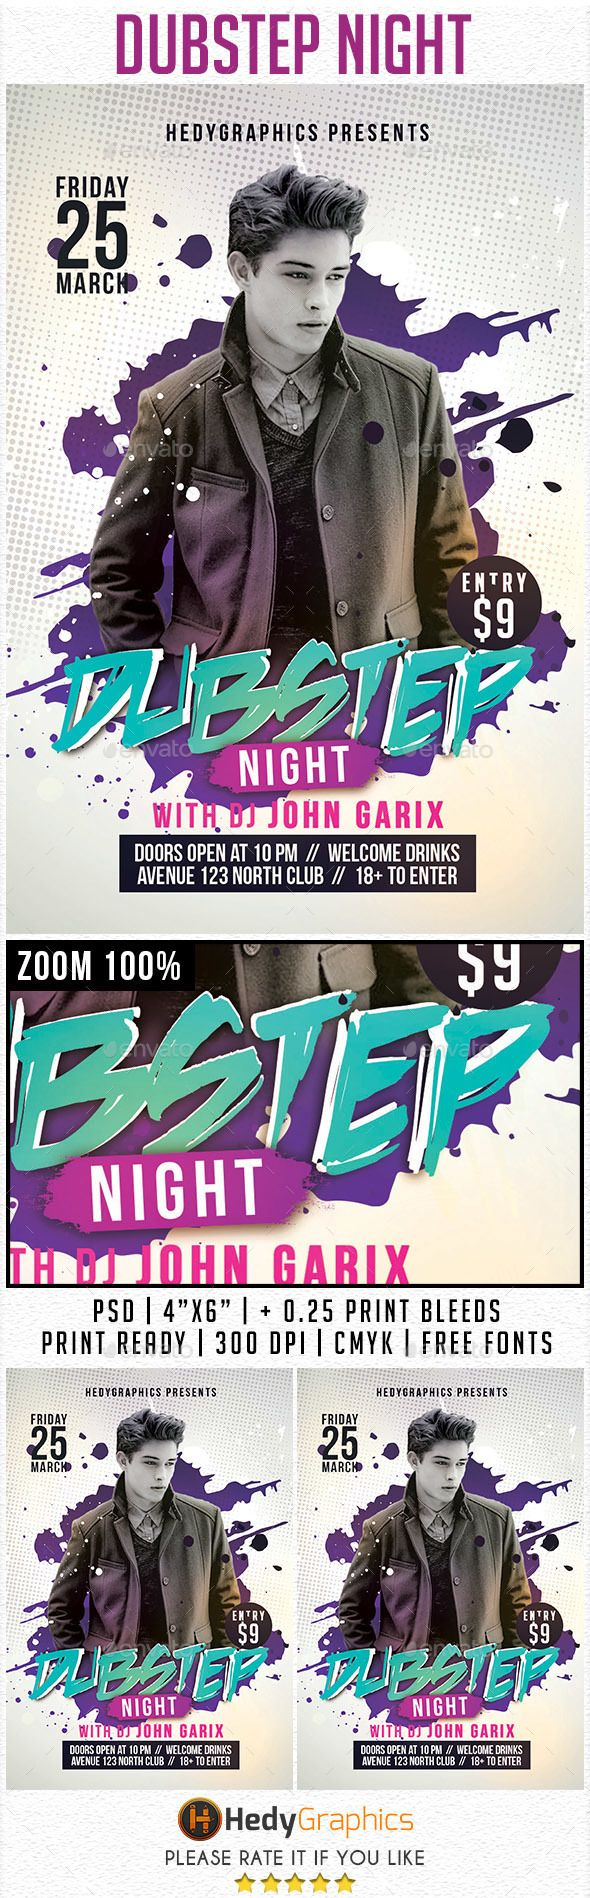 Dubstep & Guest Dj - Flyer Template PSD #design Download: http://graphicriver.net/item/dubstep-guest-dj-flyer-template/14485776?ref=ksioks